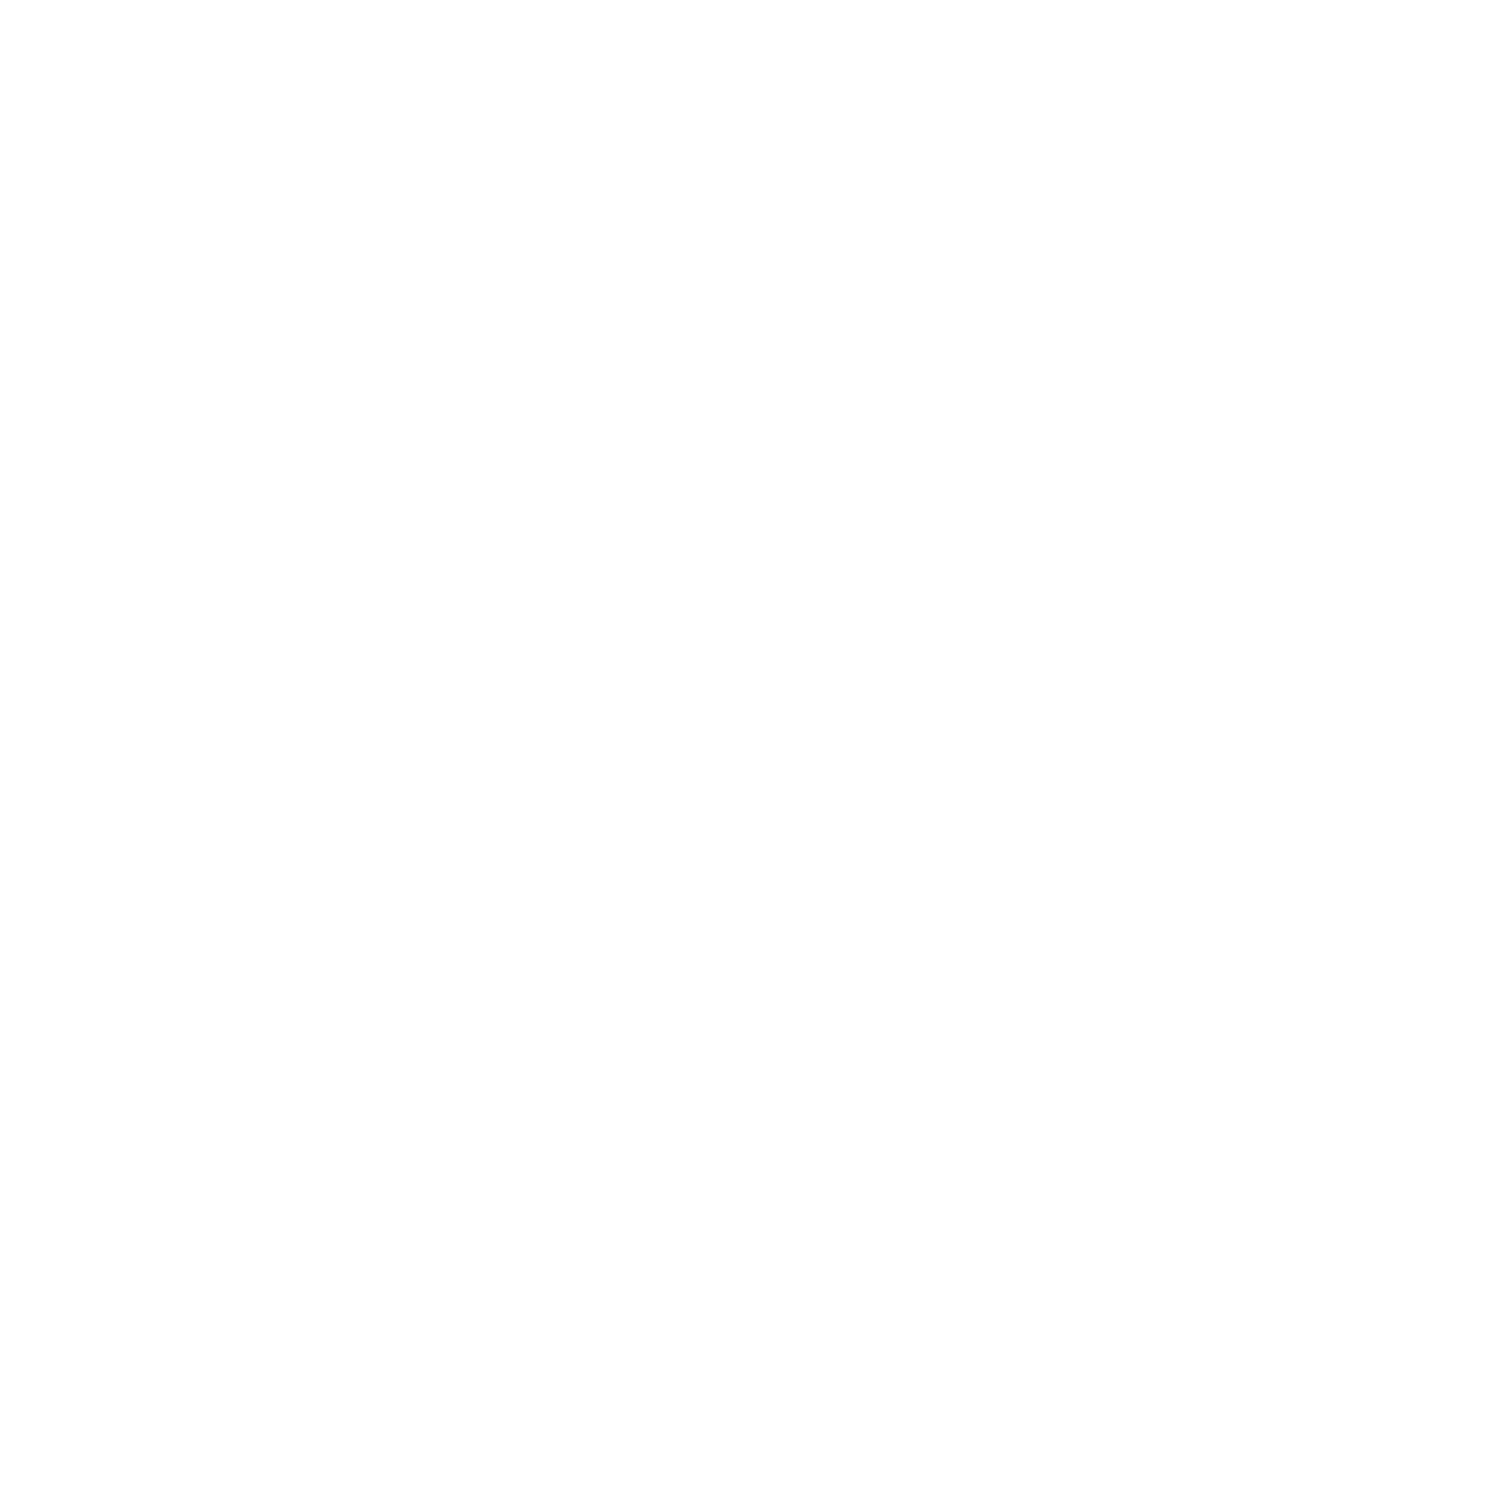 Bakery Bar